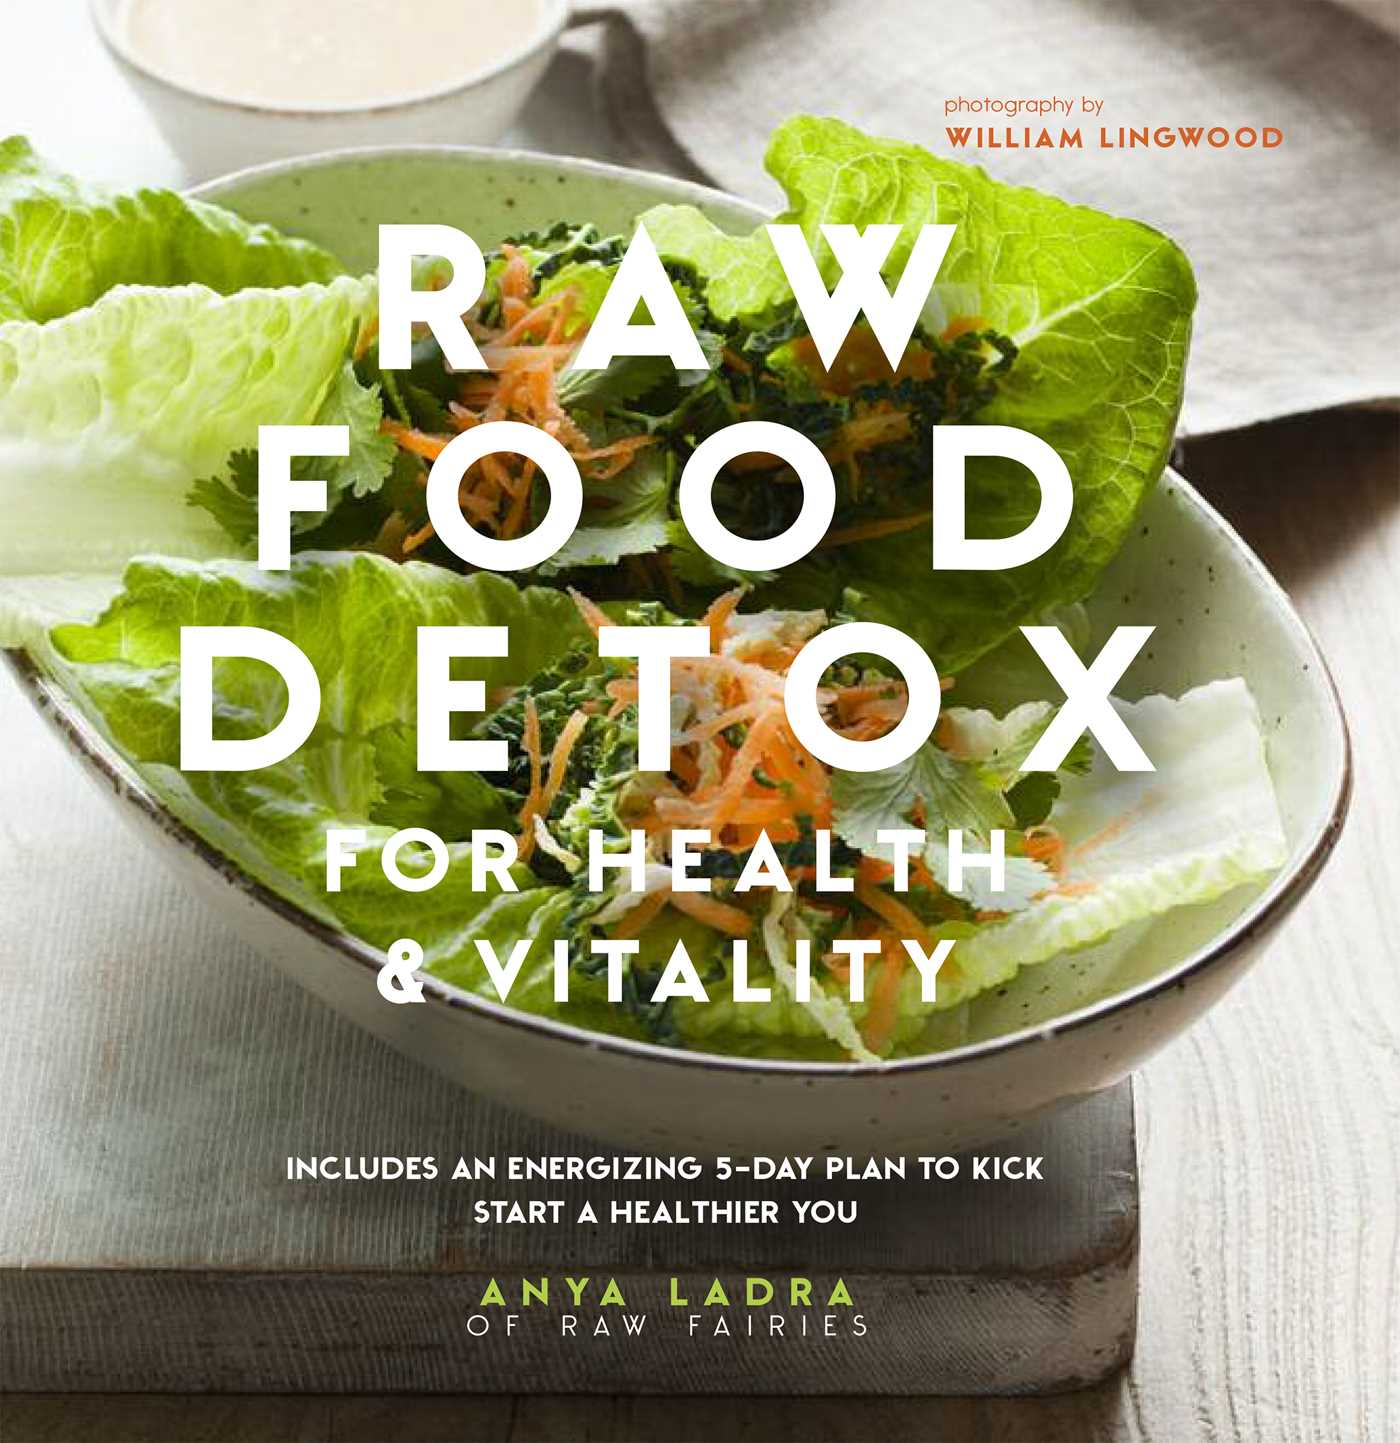 Raw food detox for health and vitality book by anya ladra raw food detox for health and vitality 9781849757287 hr forumfinder Images